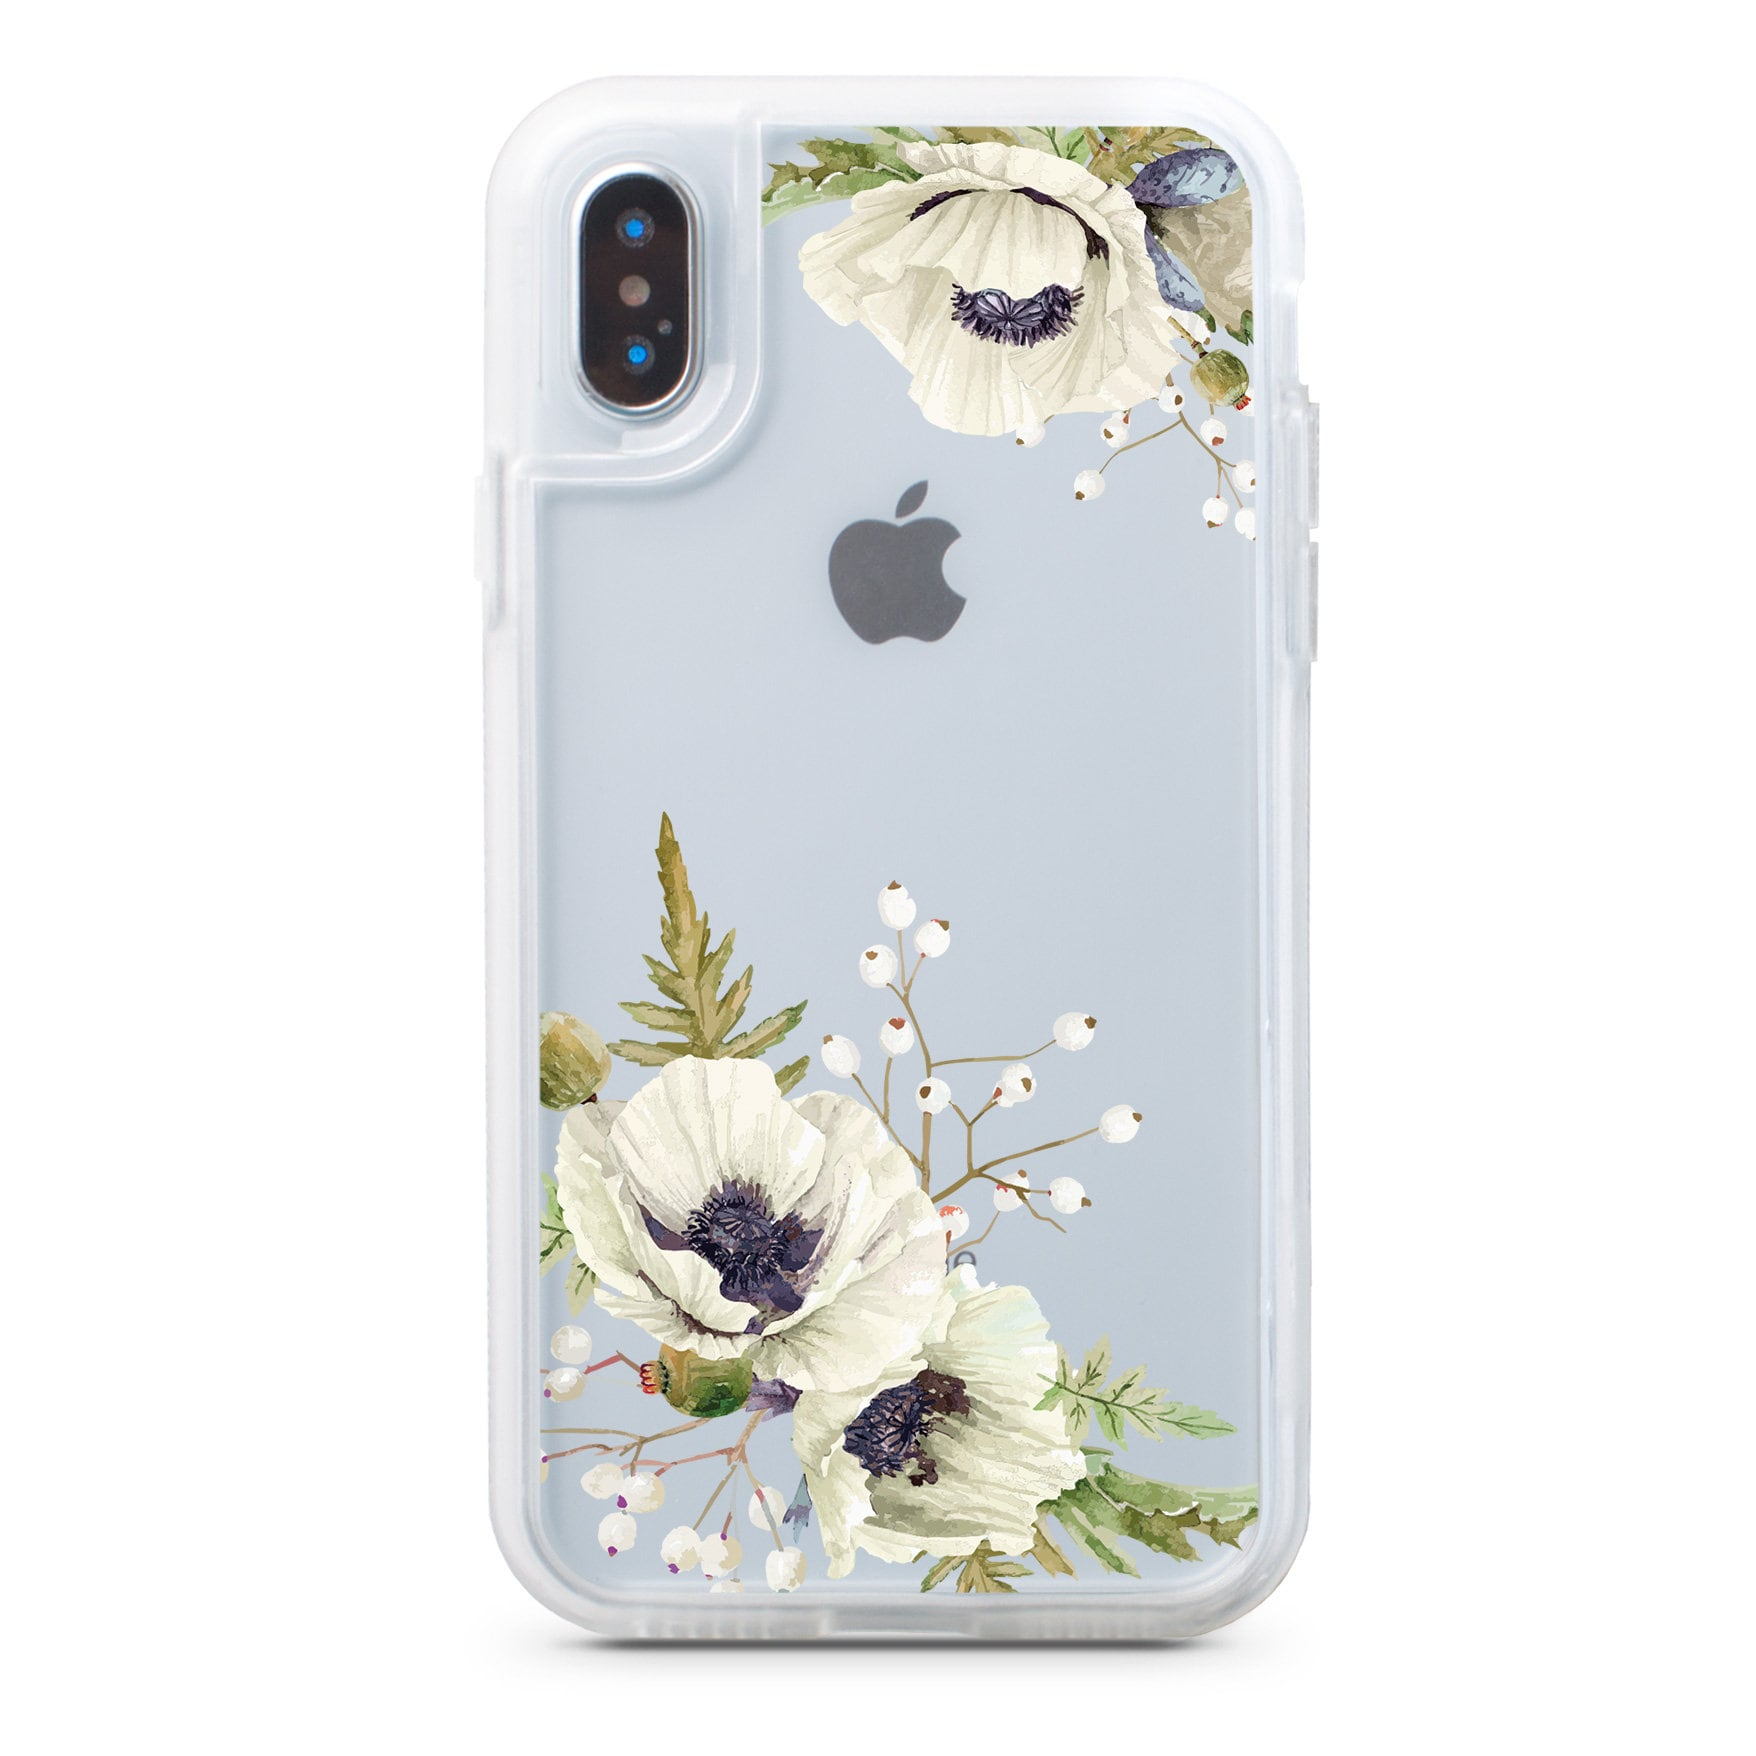 Iphone 8 Case Iphone 7 Plus Case Gift Iphone X Case Floral Etsy